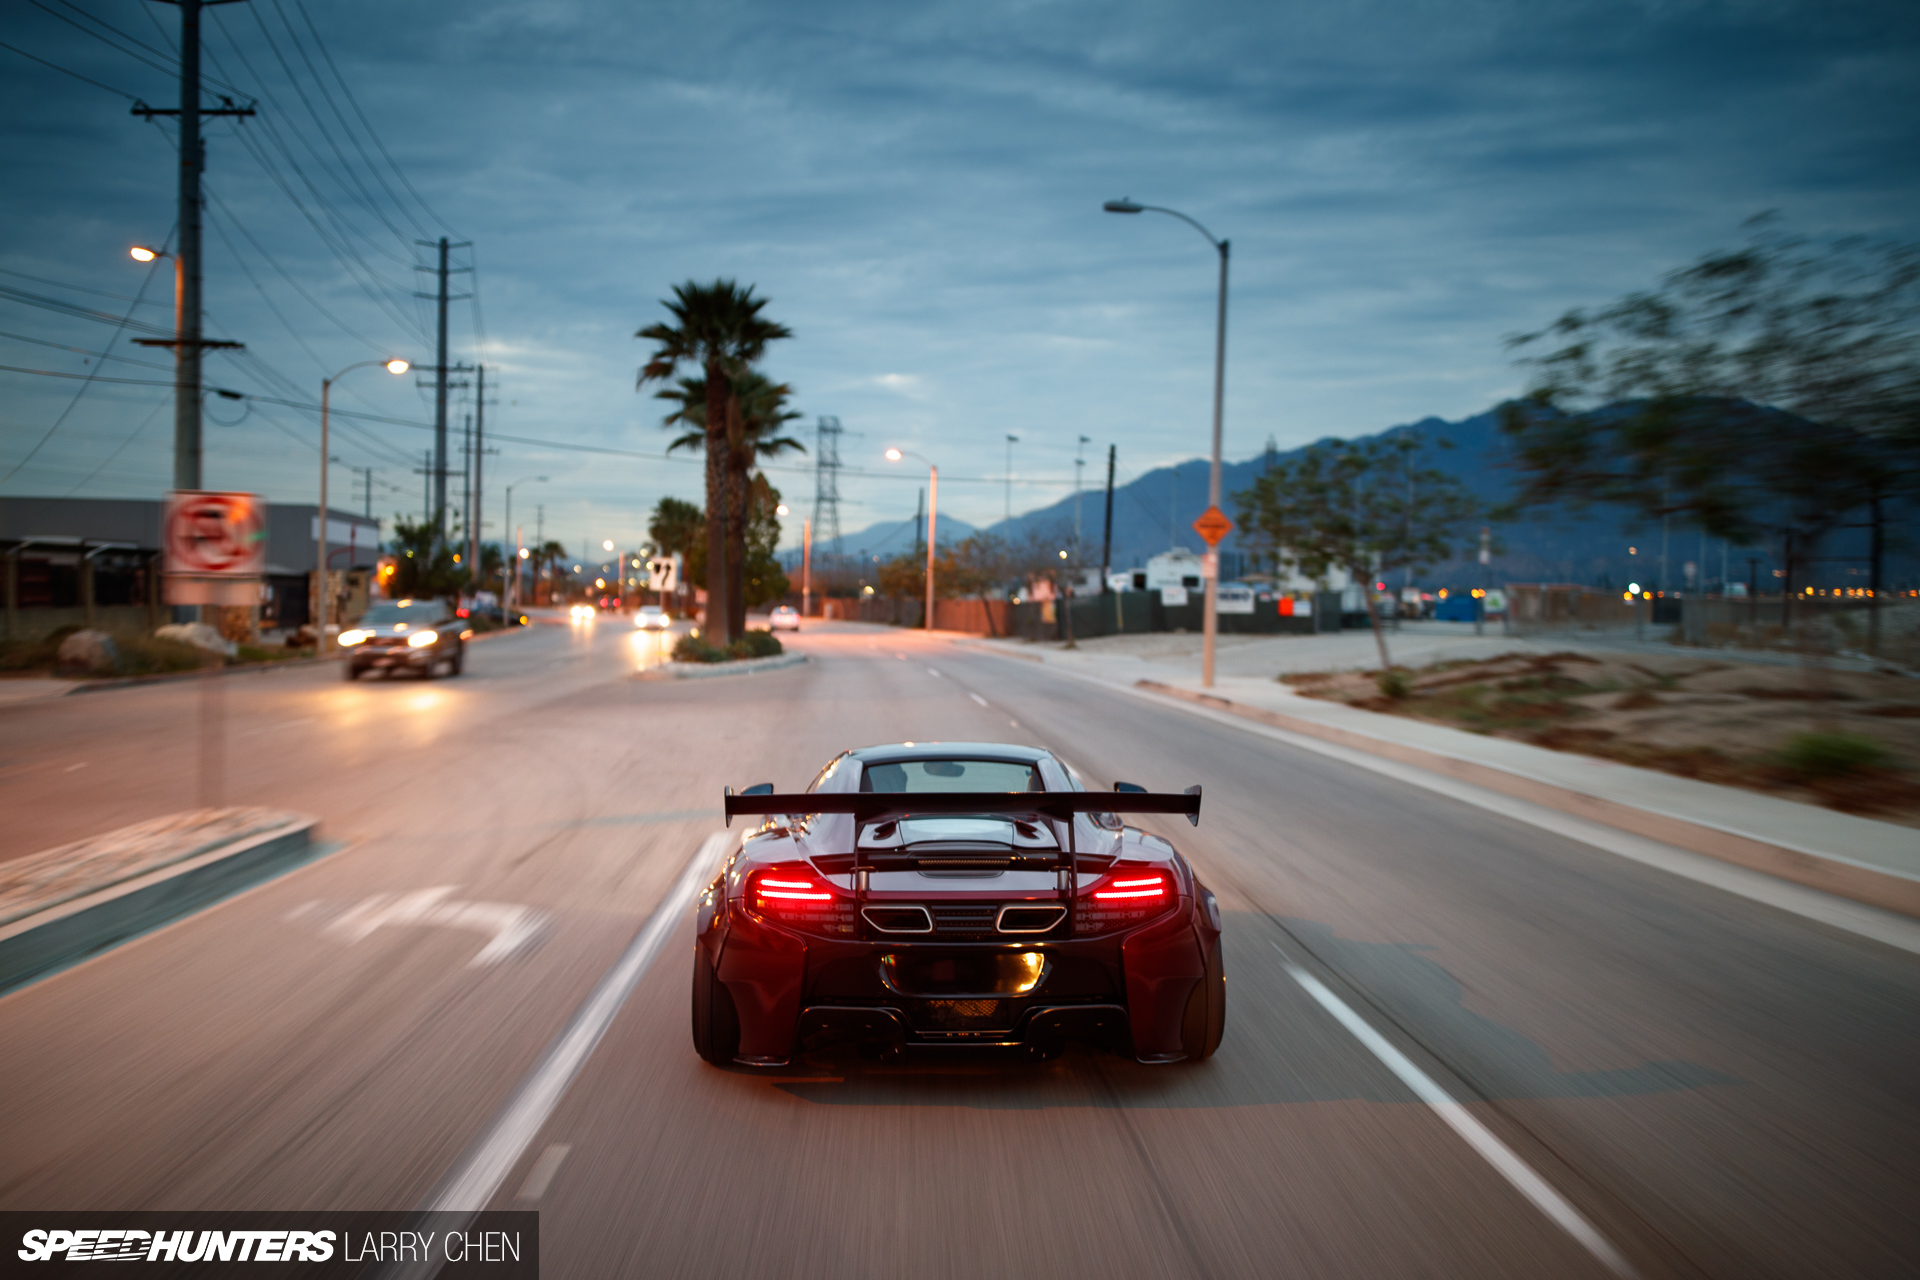 Larry_Chen_Speedhunters_liberty_walk_mclaren_Mp412c-27 LB-WORKS Mclaren 650S / MP4-12c